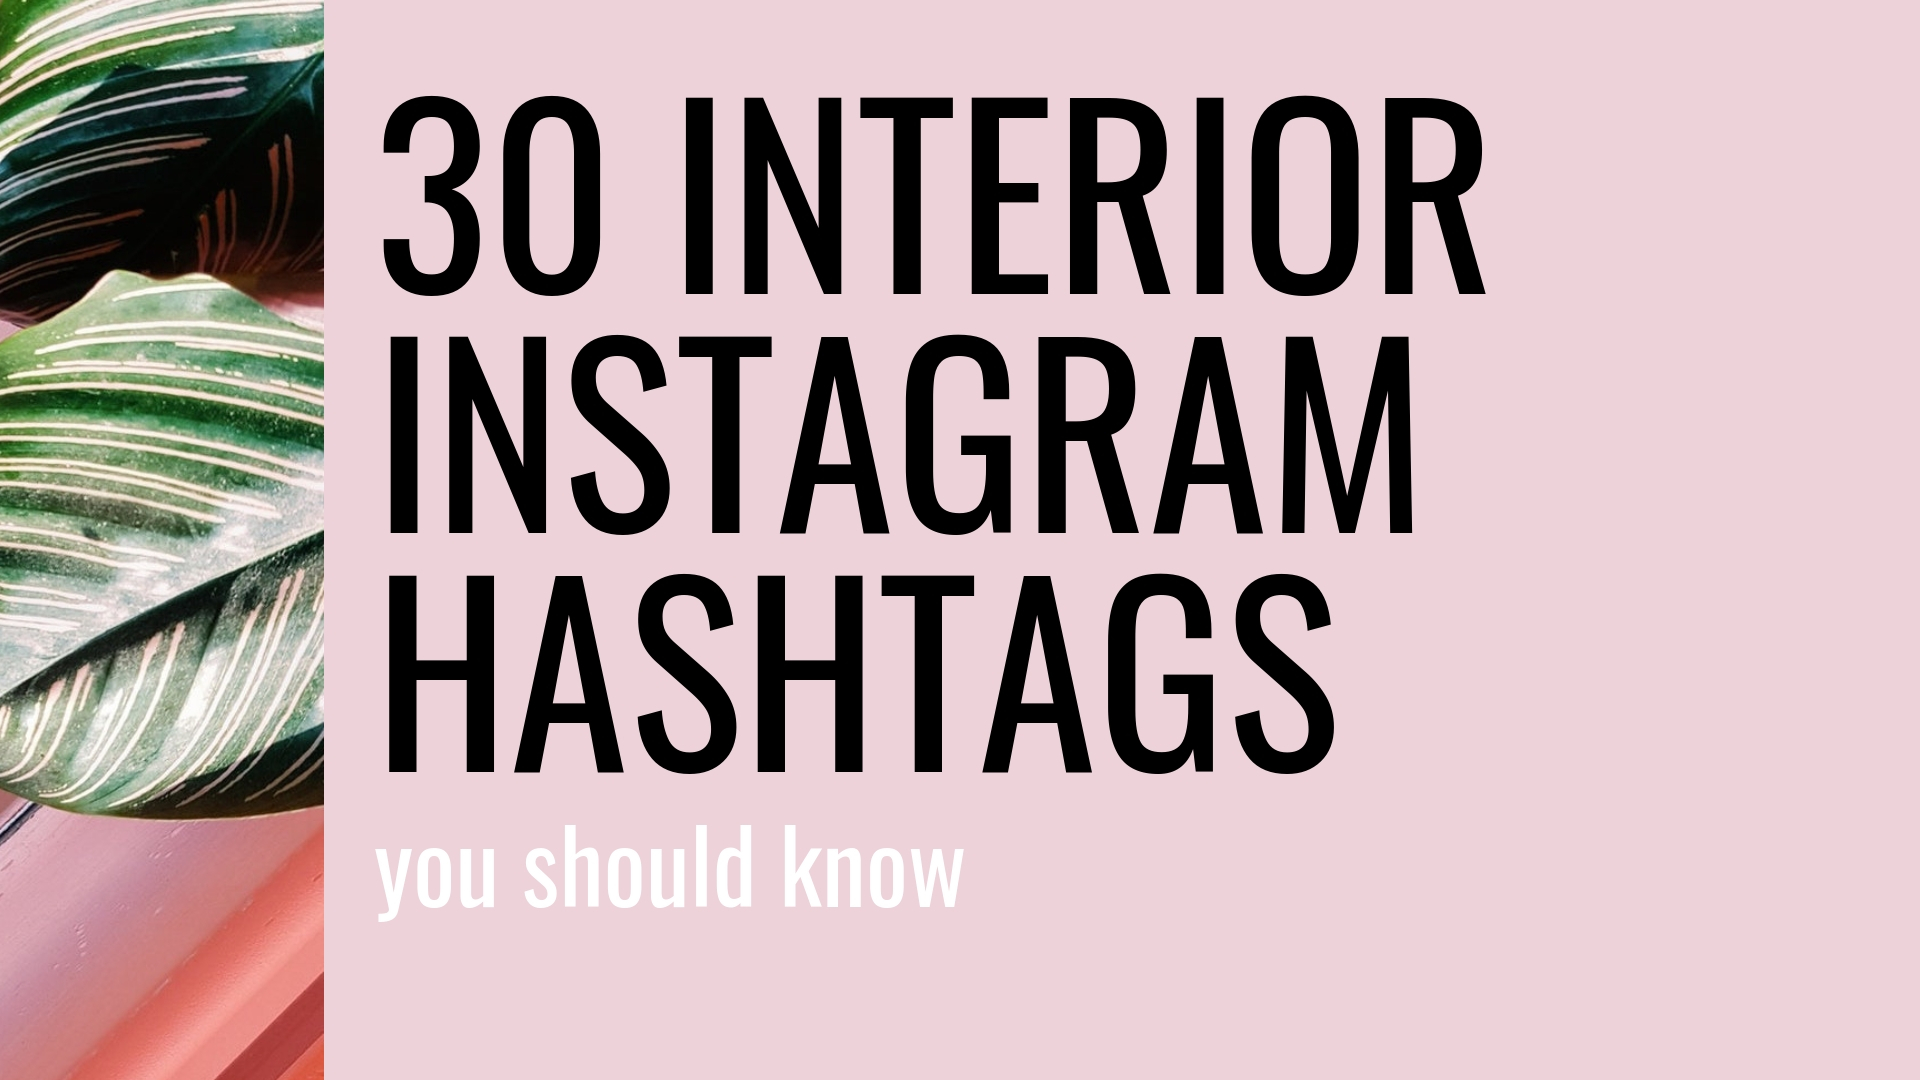 30 Interior Instagram Hashtags You Should Be Using Topology